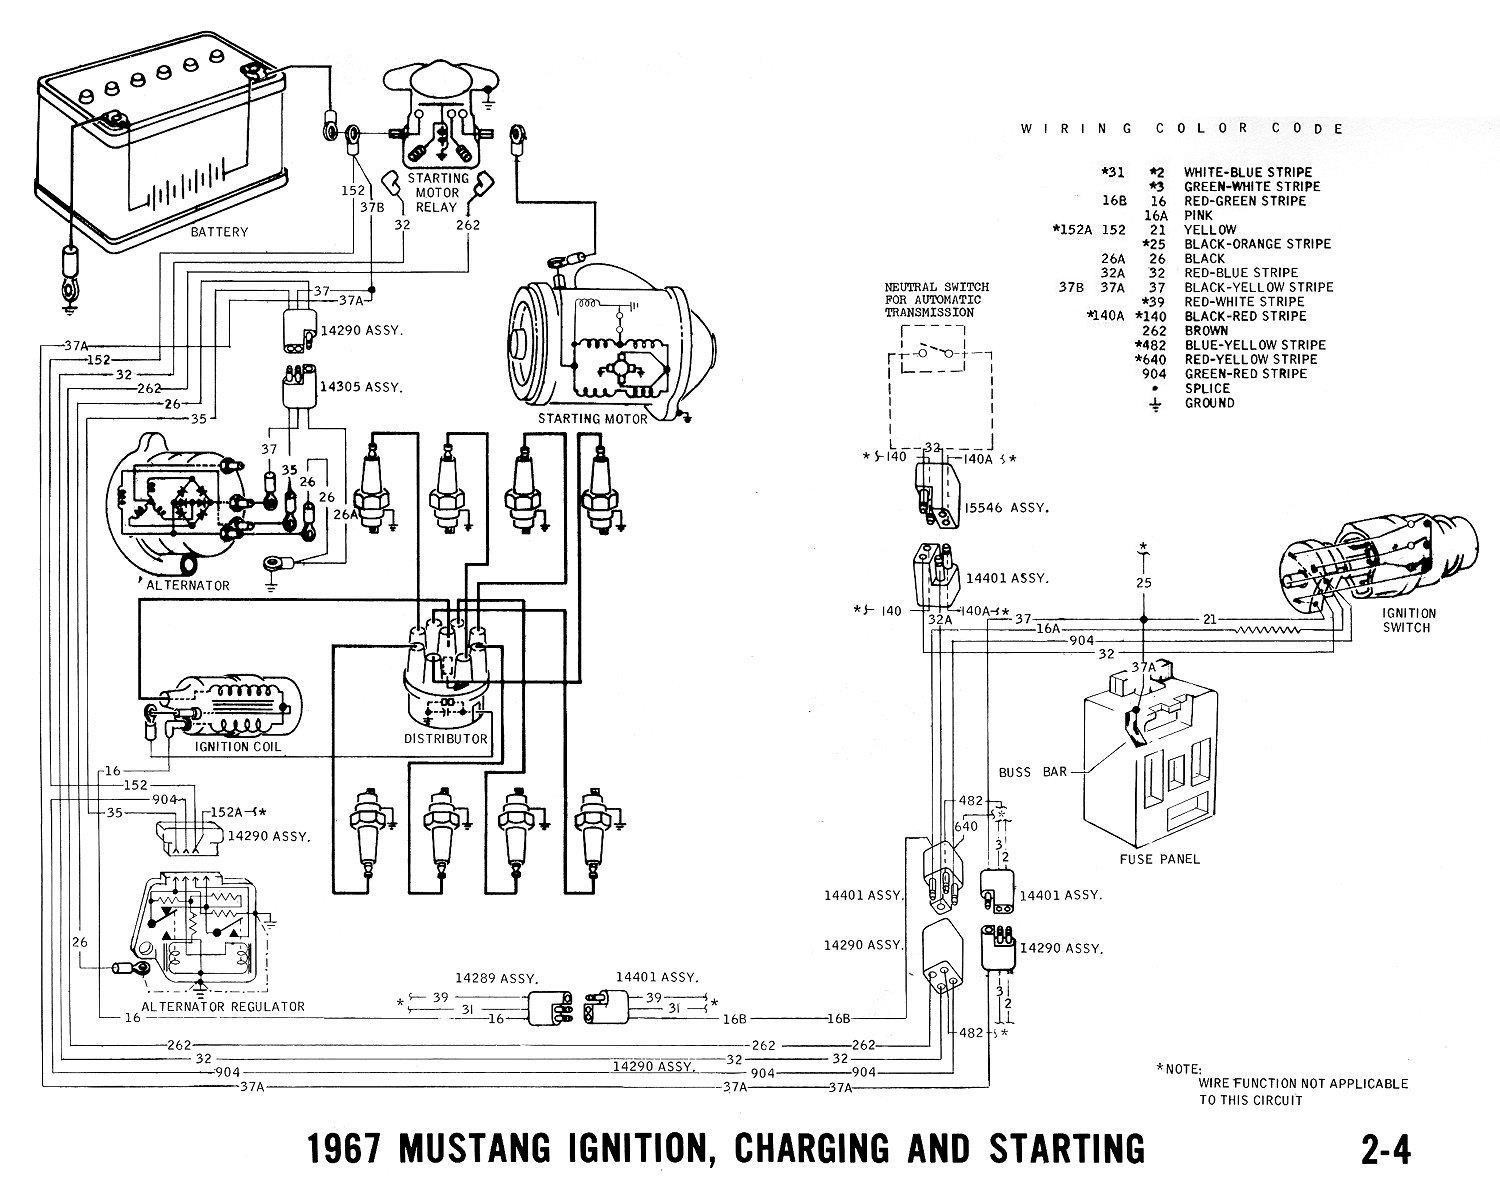 wiring diagram for 1971 mustang convertible wiring diagram variable 1970 Mustang Solenoid Wiring Diagram